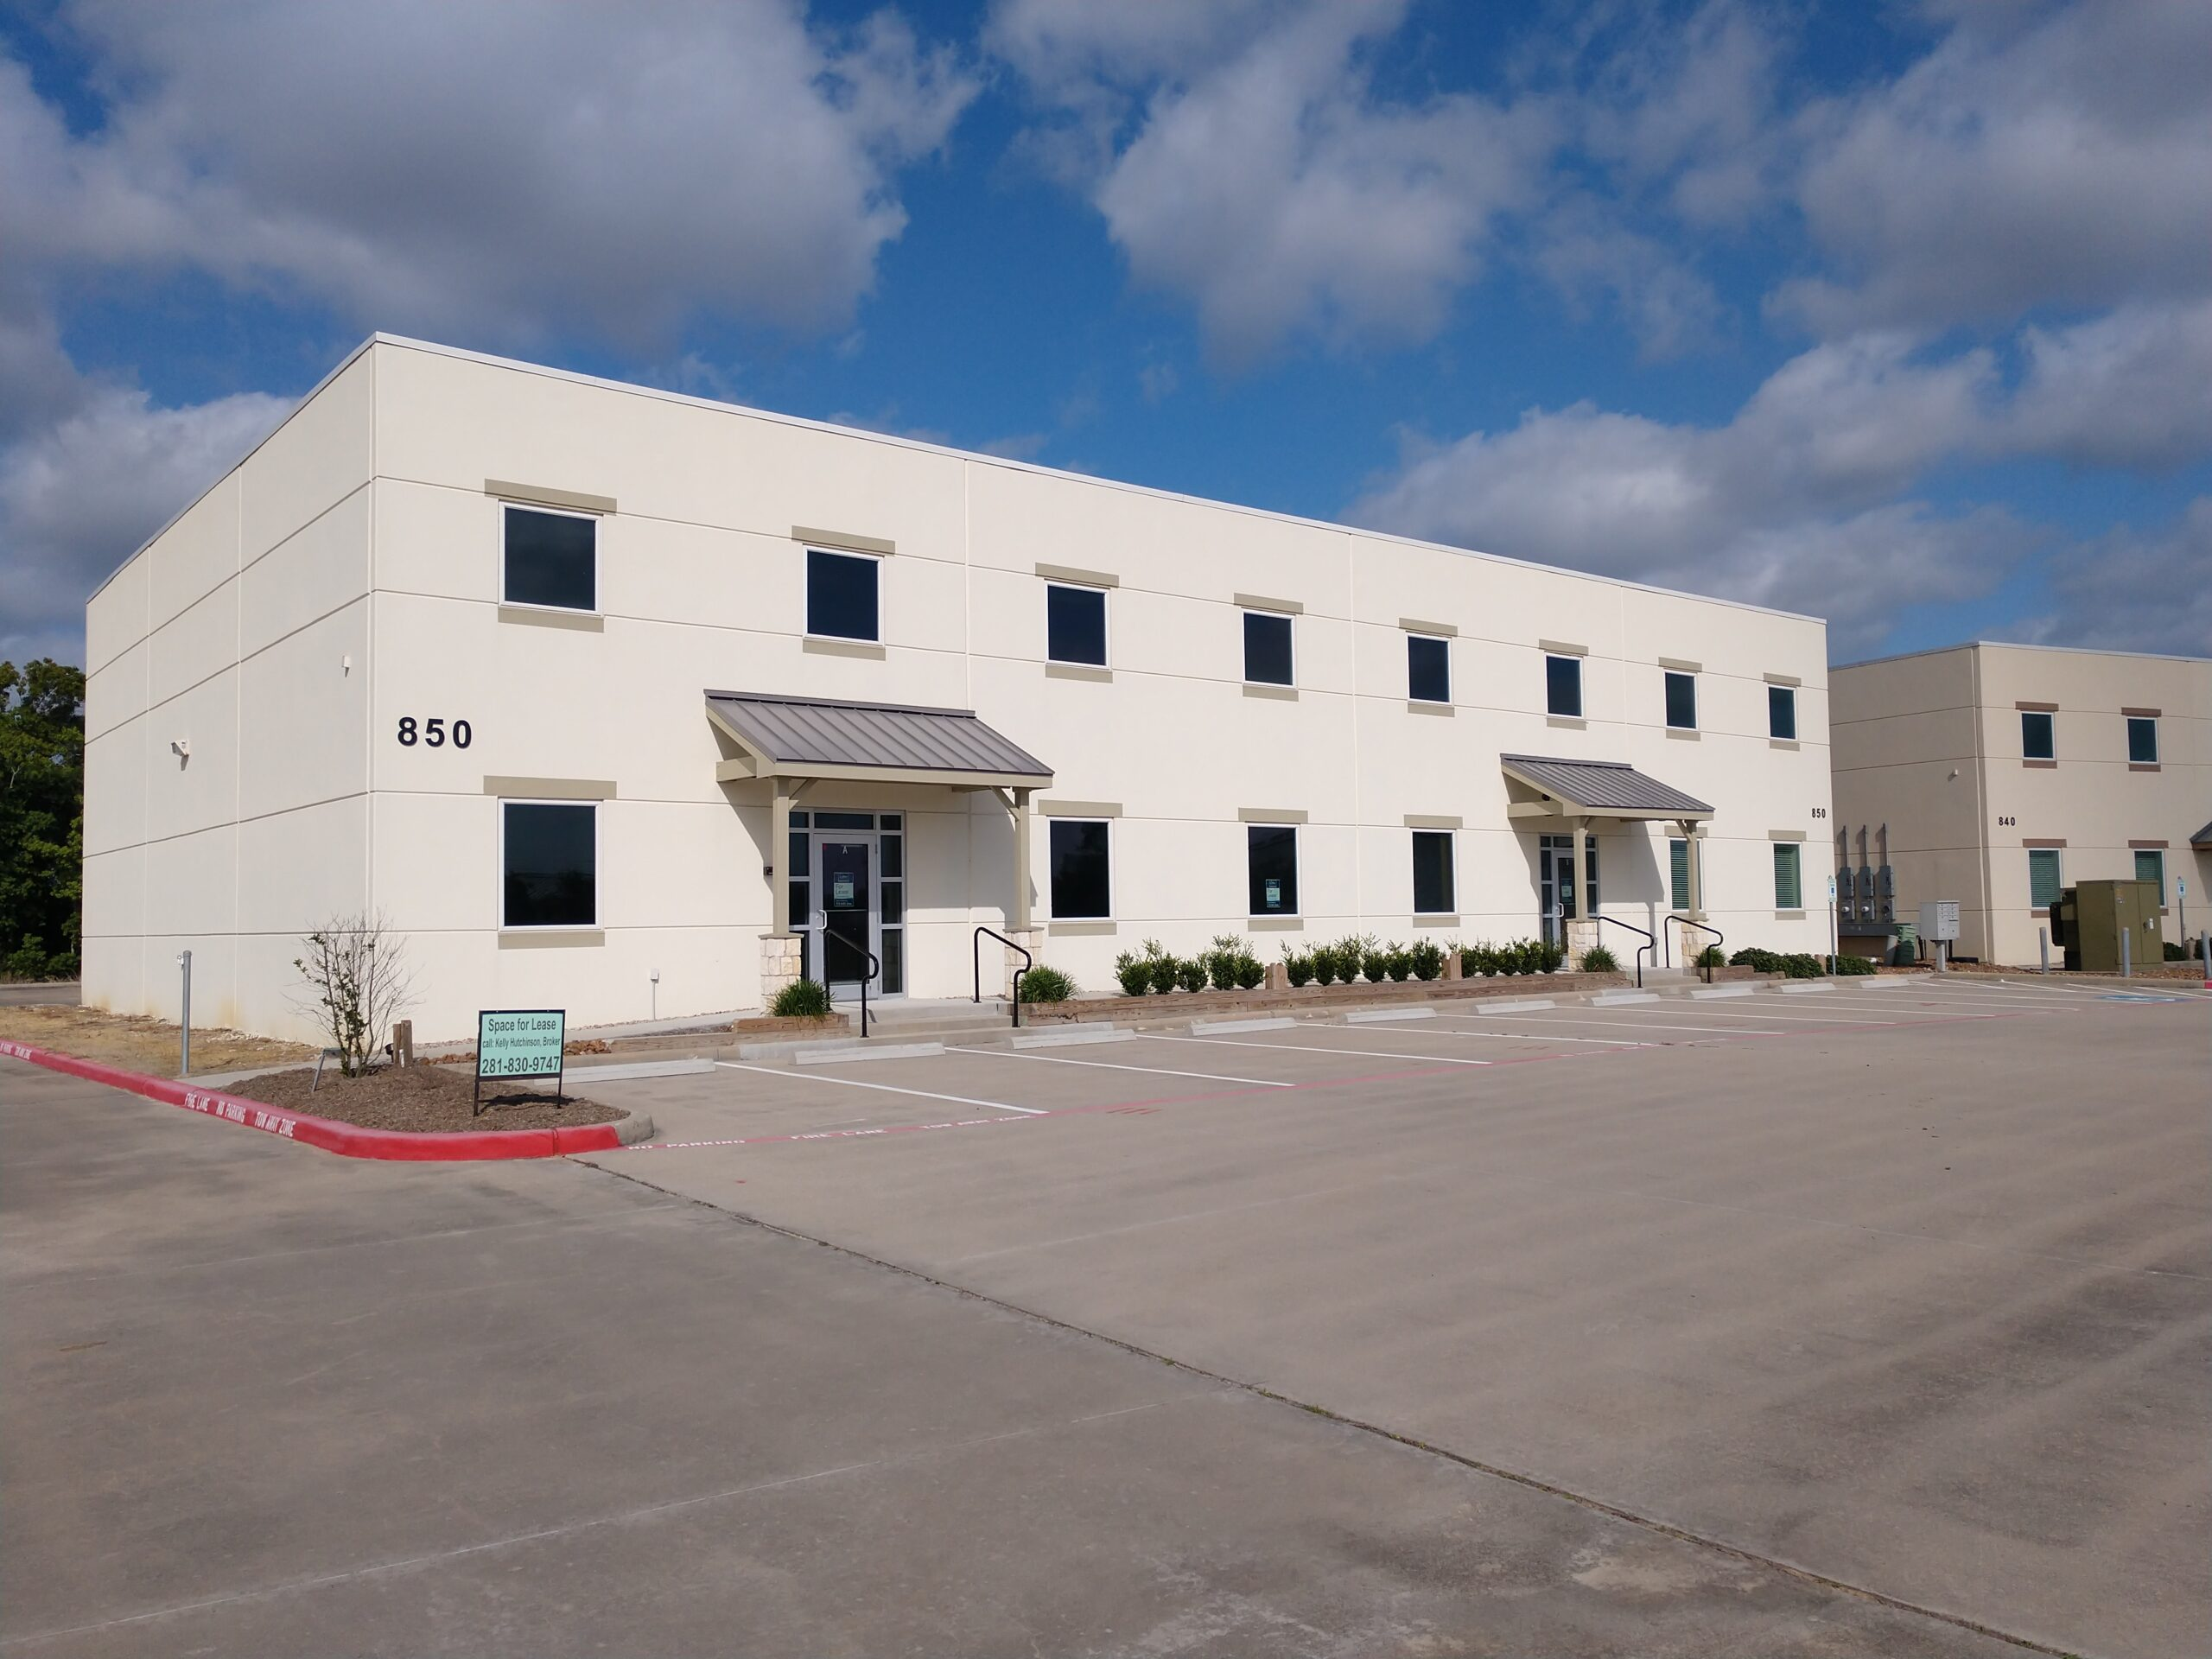 840 Lawrence Rd, Kemah Flex Building FOR SALE